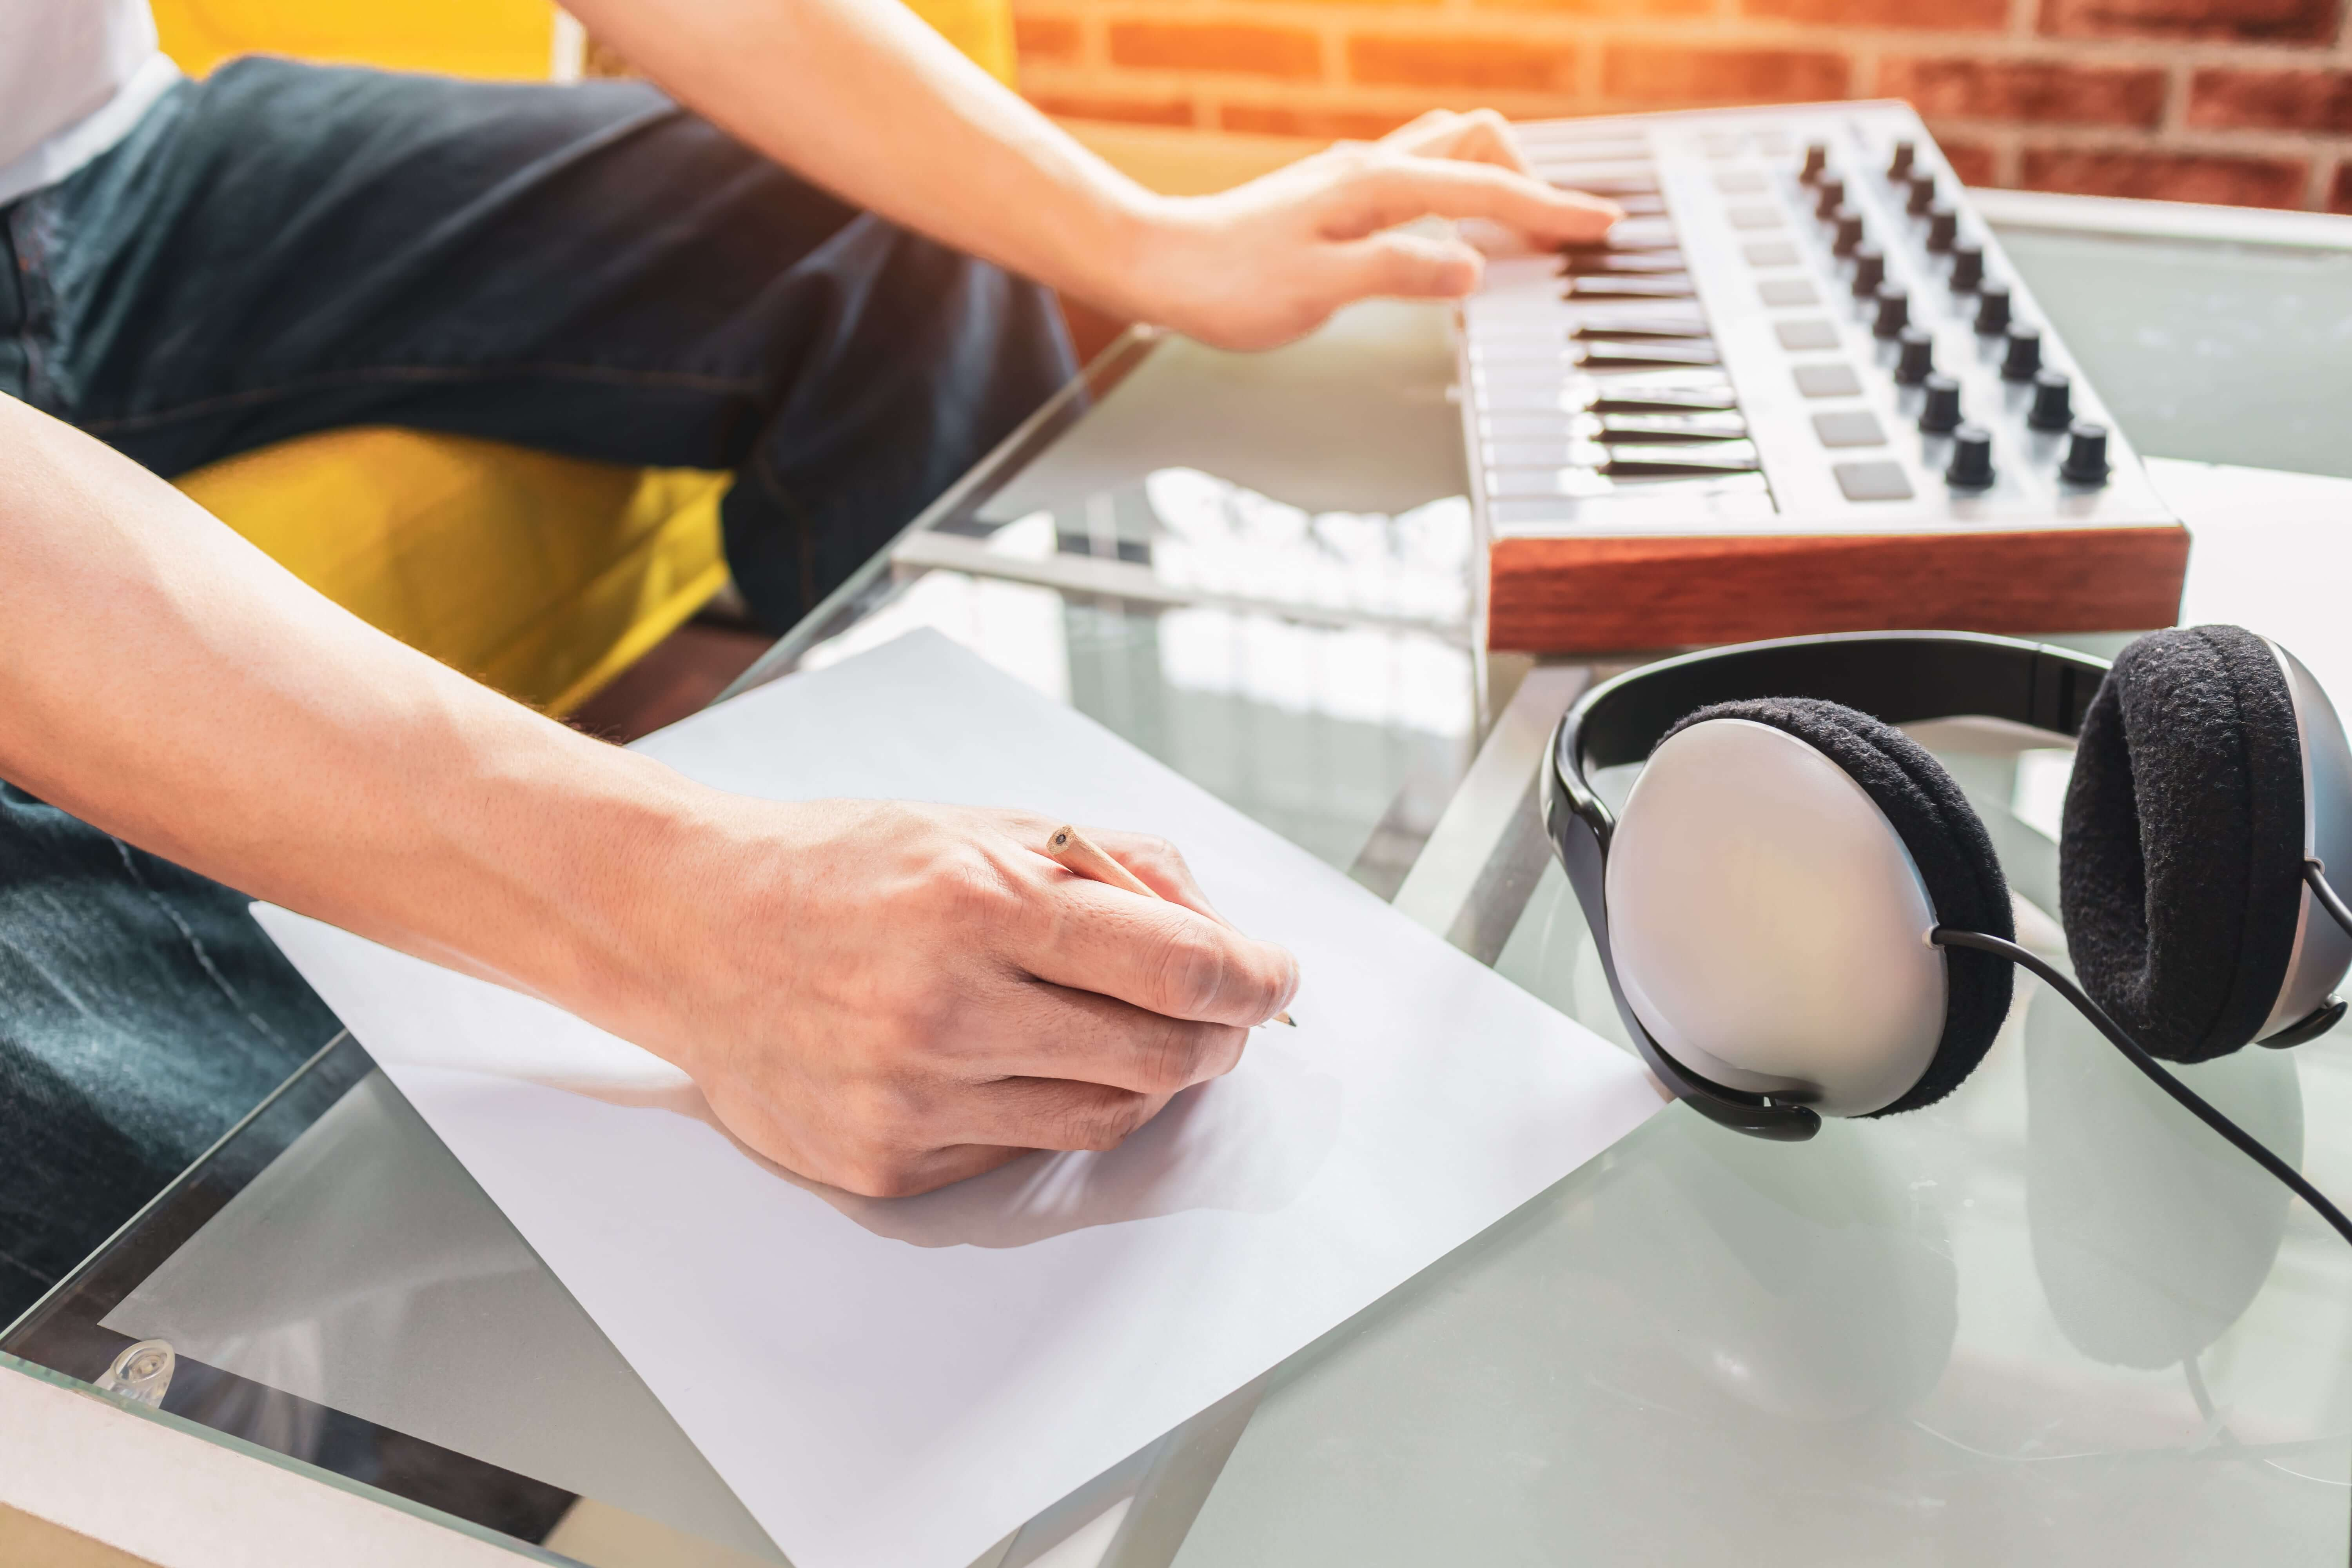 Student trying to write a song